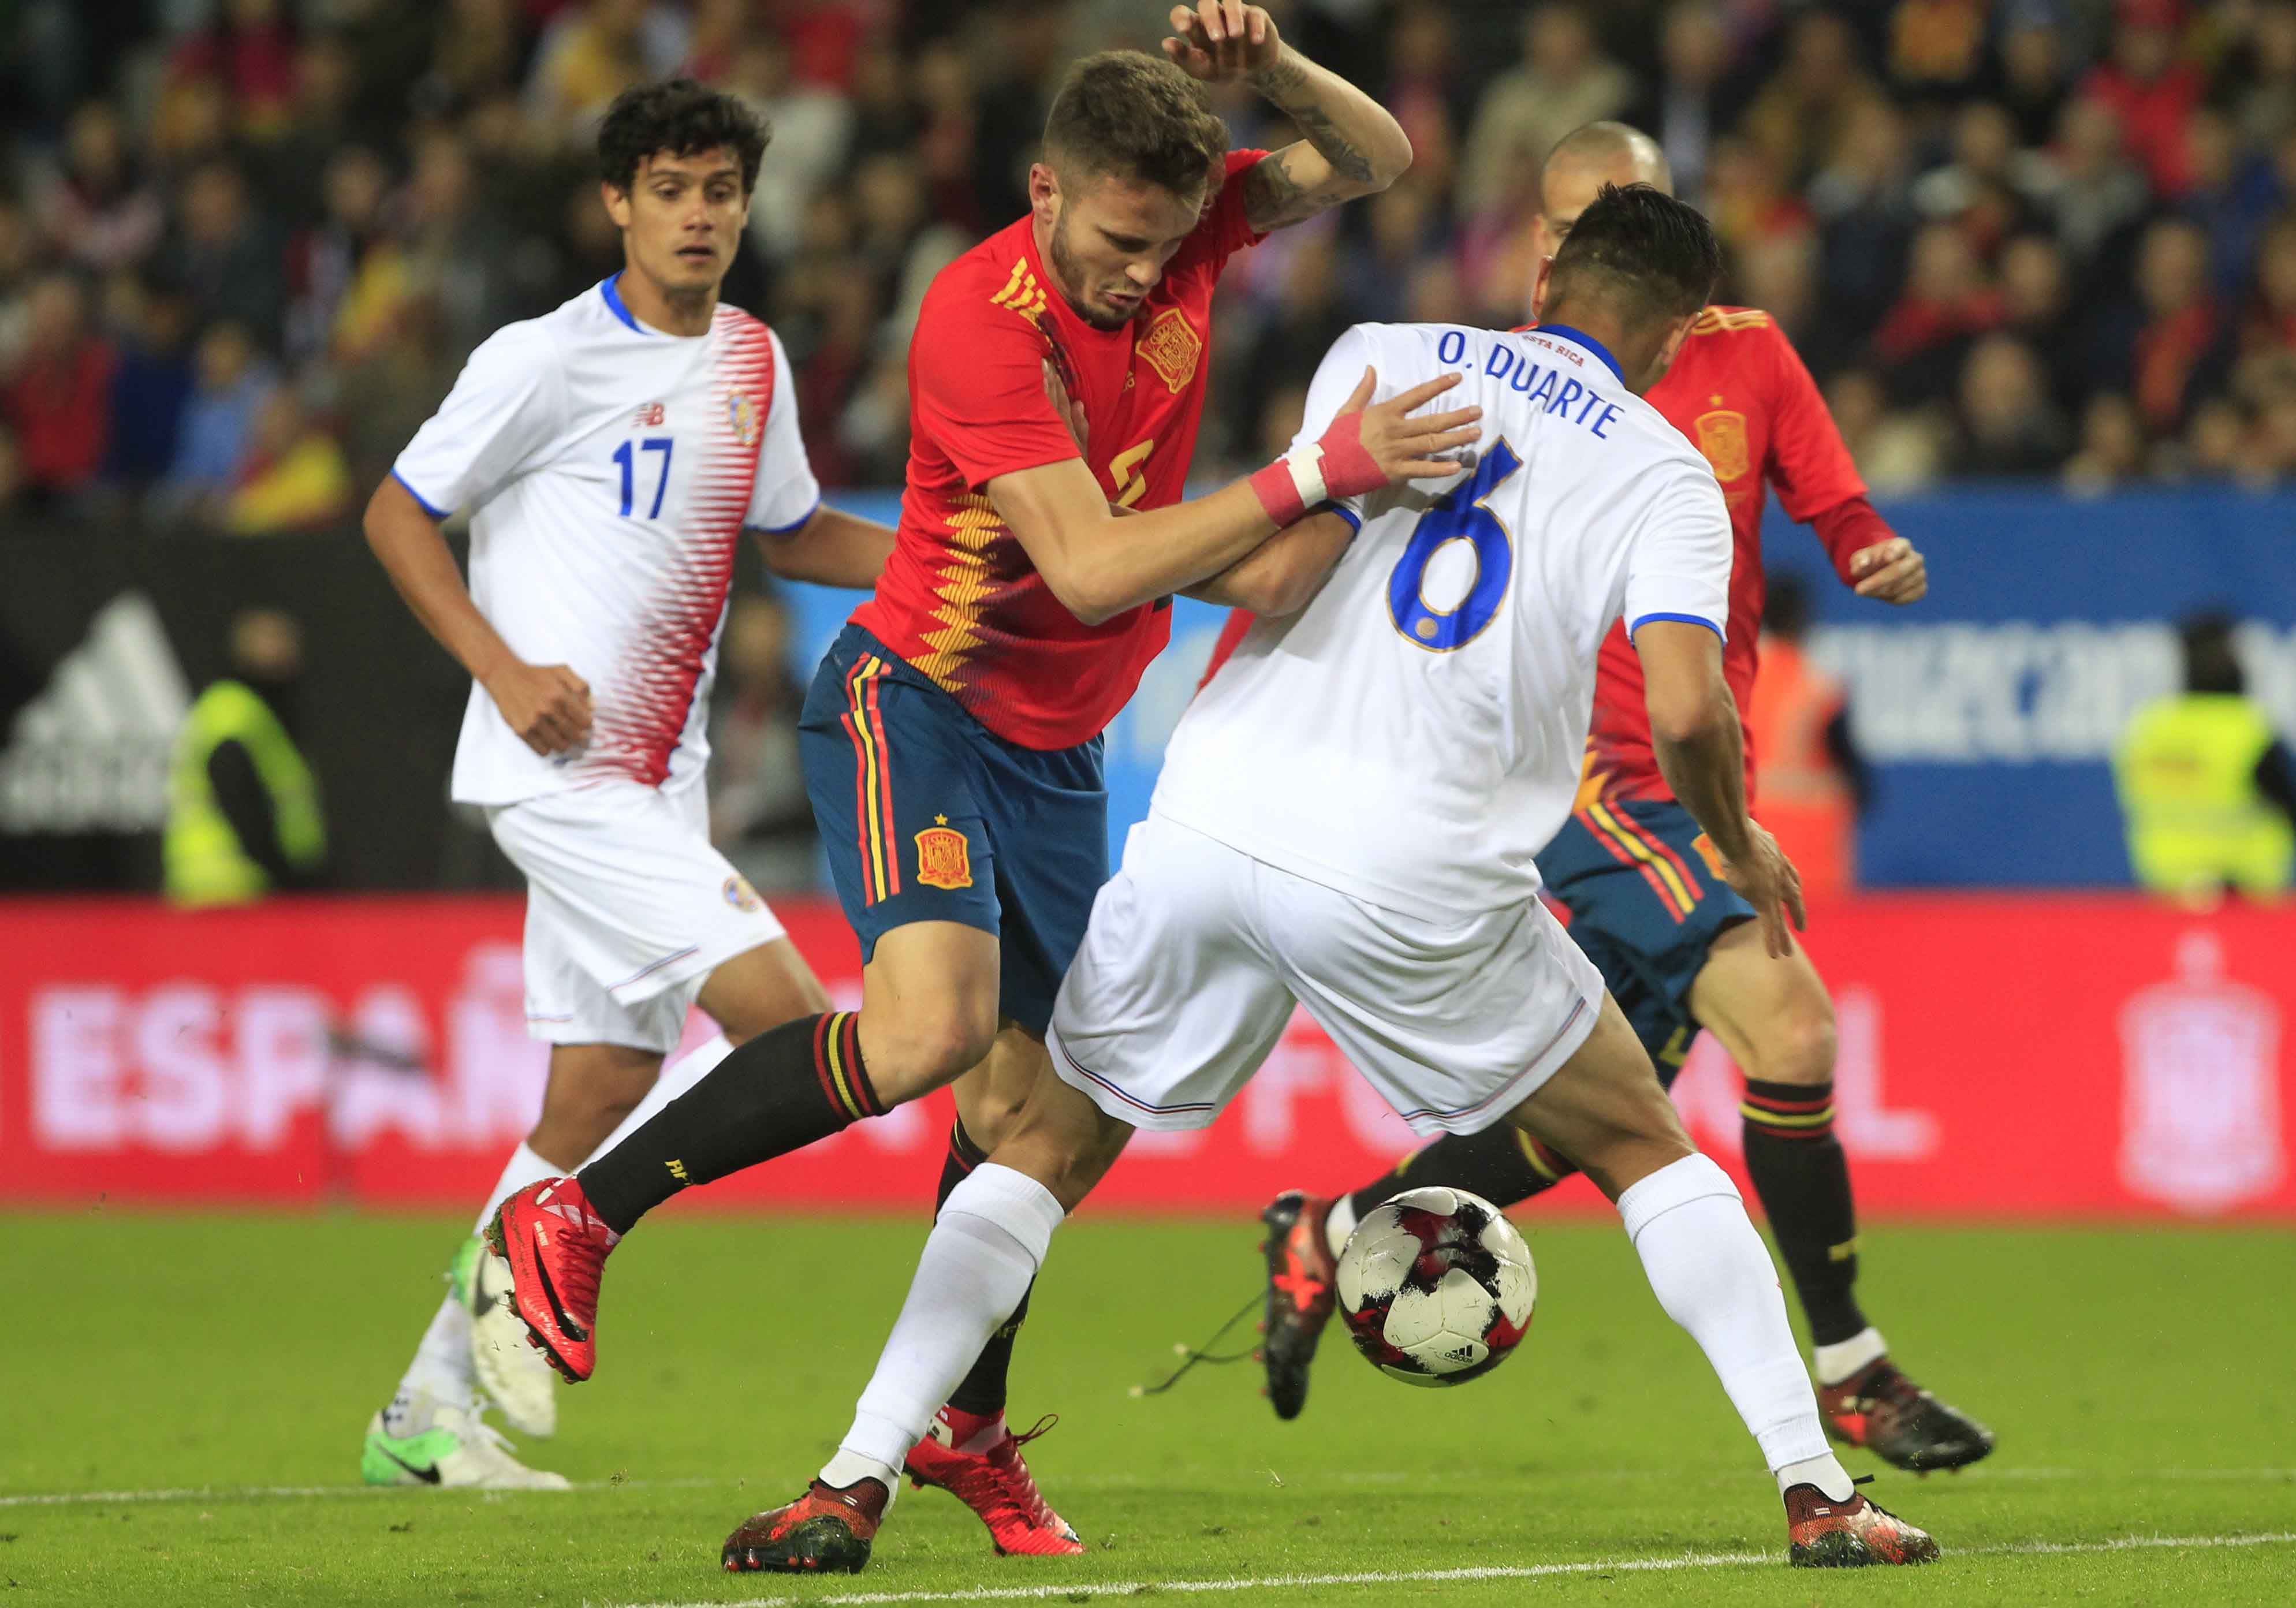 Silva nets 2 as Spain rout Costa Rica 5-0 in friendly